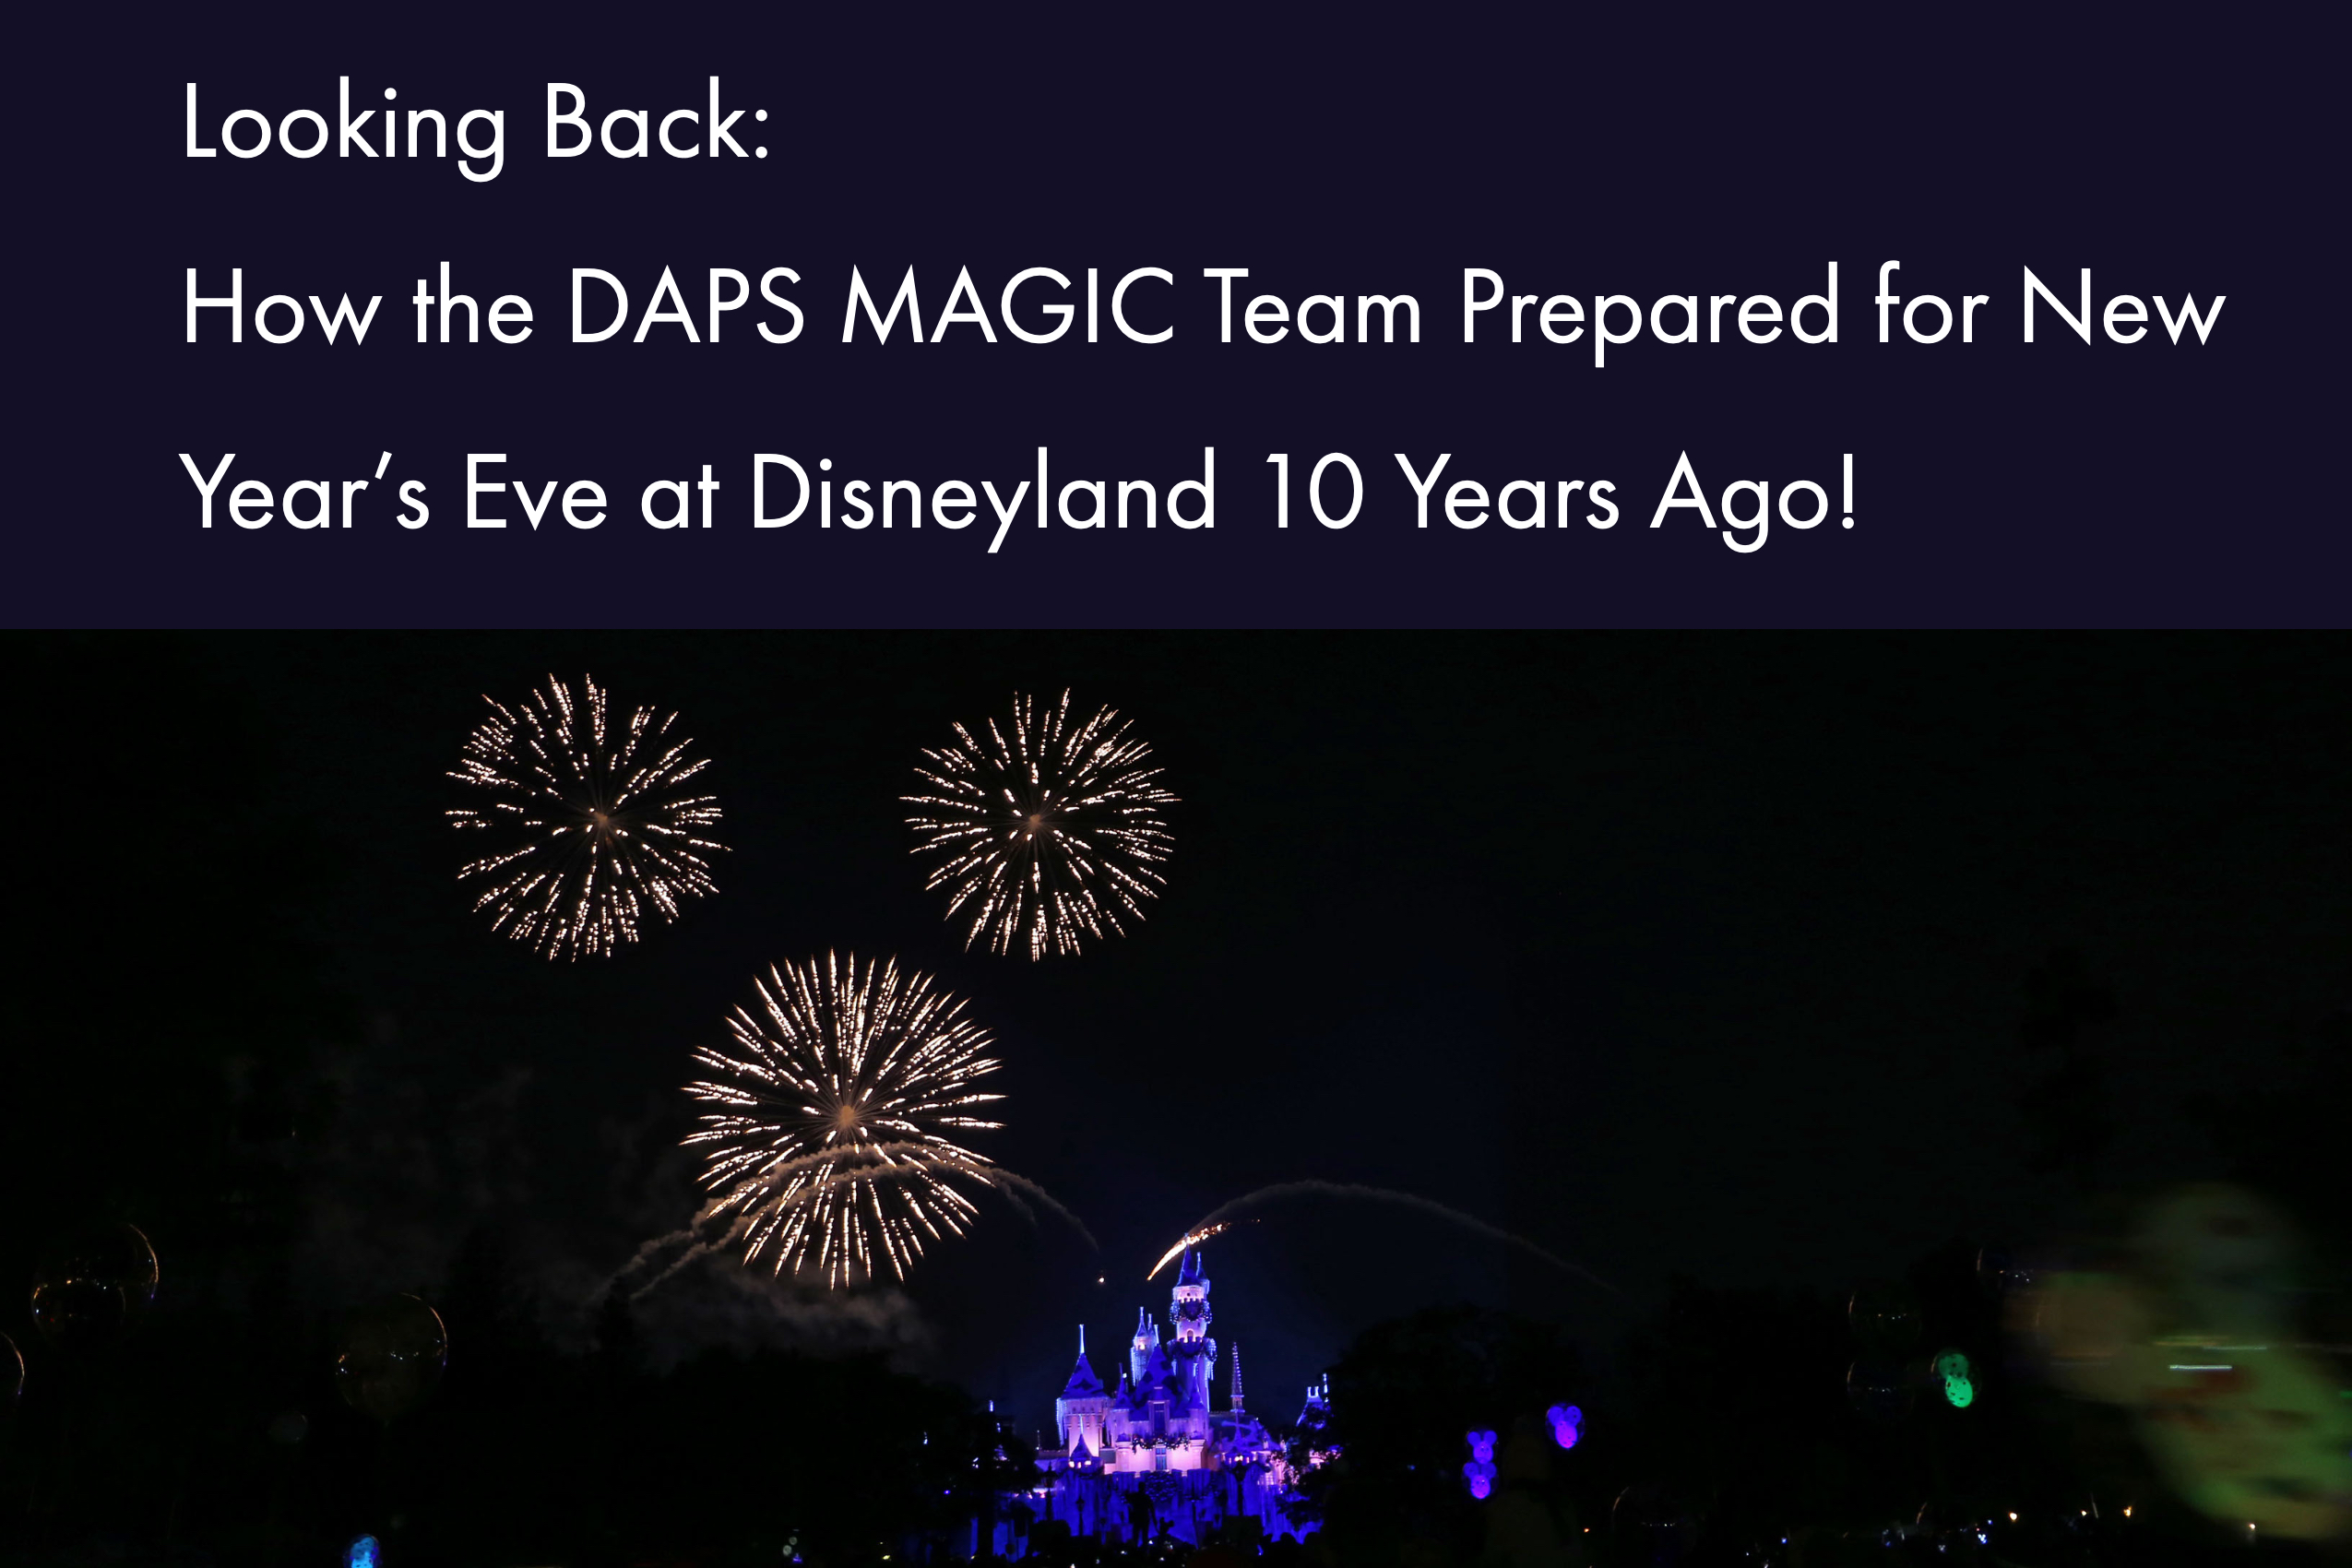 Looking Back: How the DAPS MAGIC Team Prepared for New Year's Eve at Disneyland 10 Years Ago!